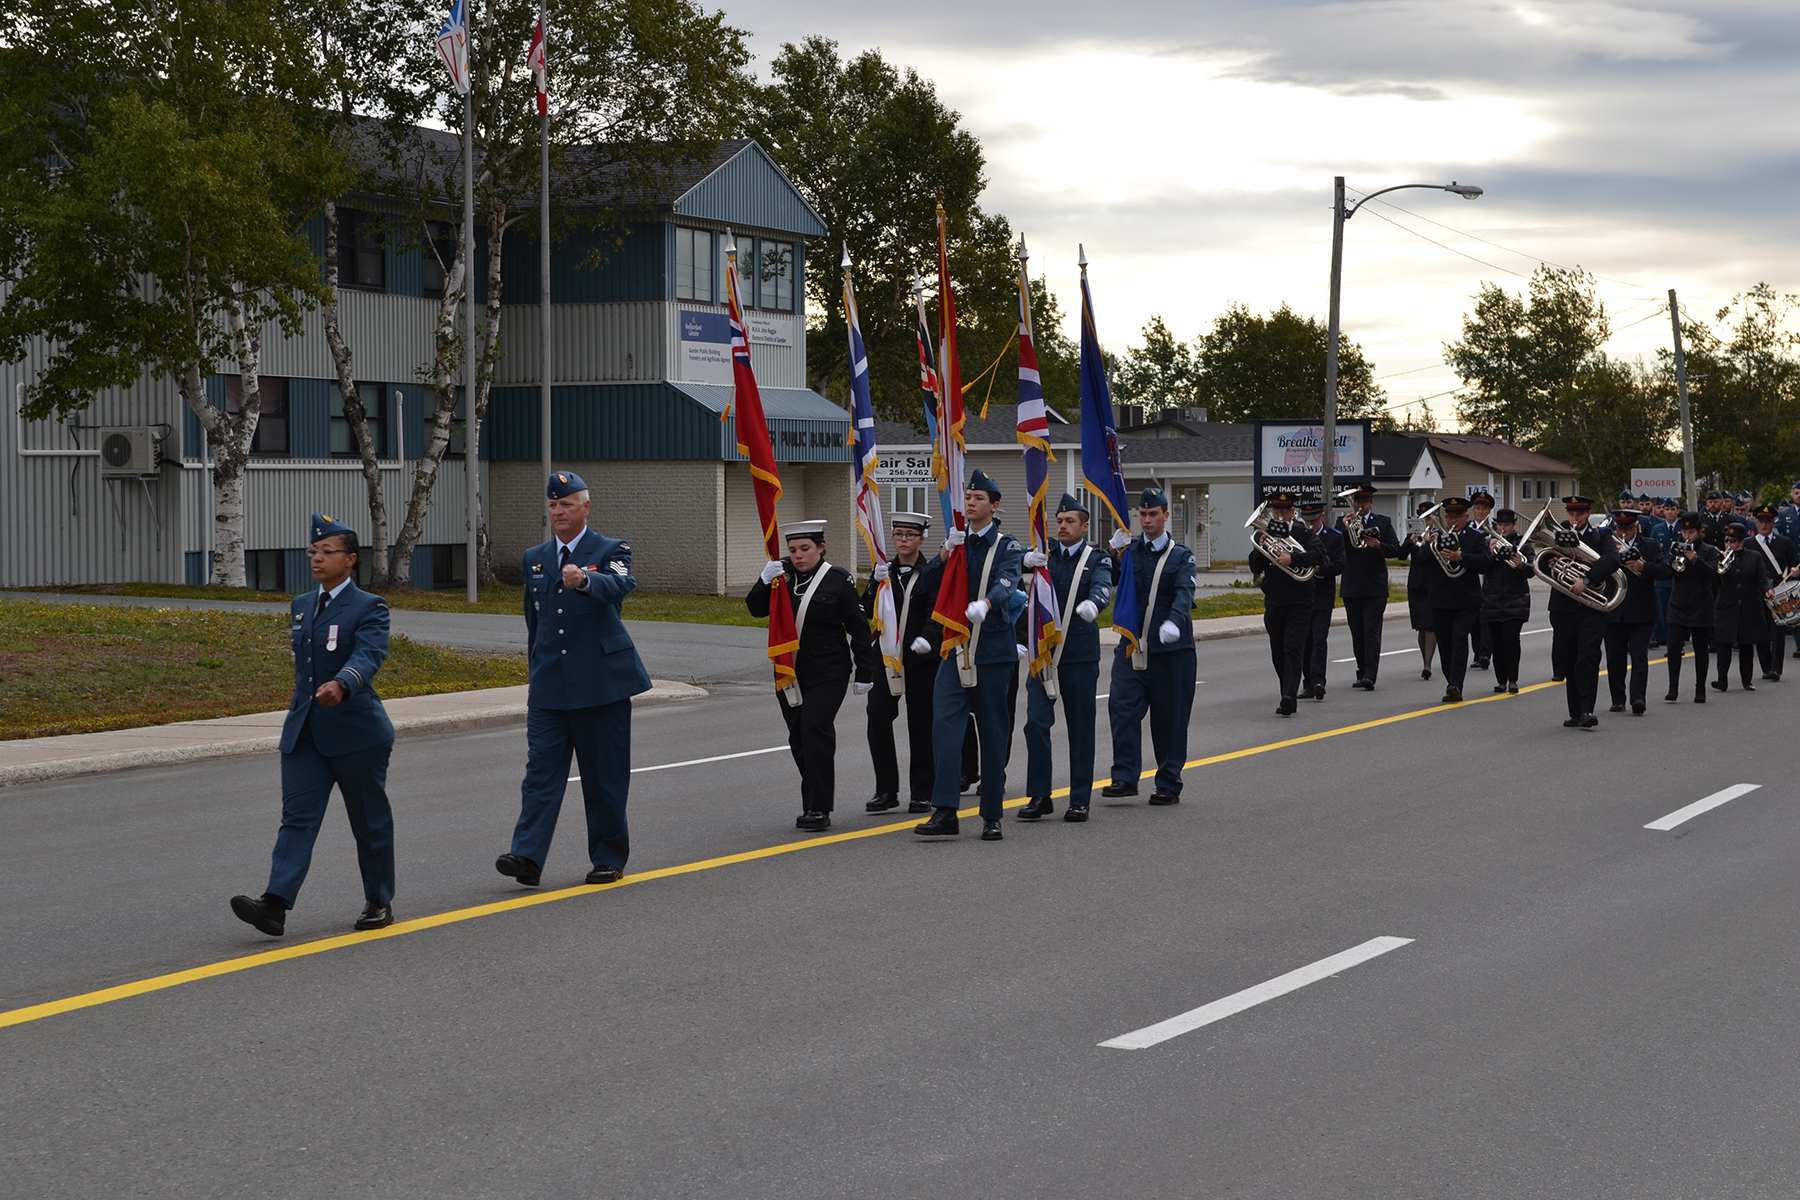 RCAF personnel, air and sea cadets and the Salvation Army Band march during the parade marking the 79th anniversary of the Battle of Britain in Gander, Newfoundland and Labrador, on September 15, 2019. PHOTO: 9 Wing Gander